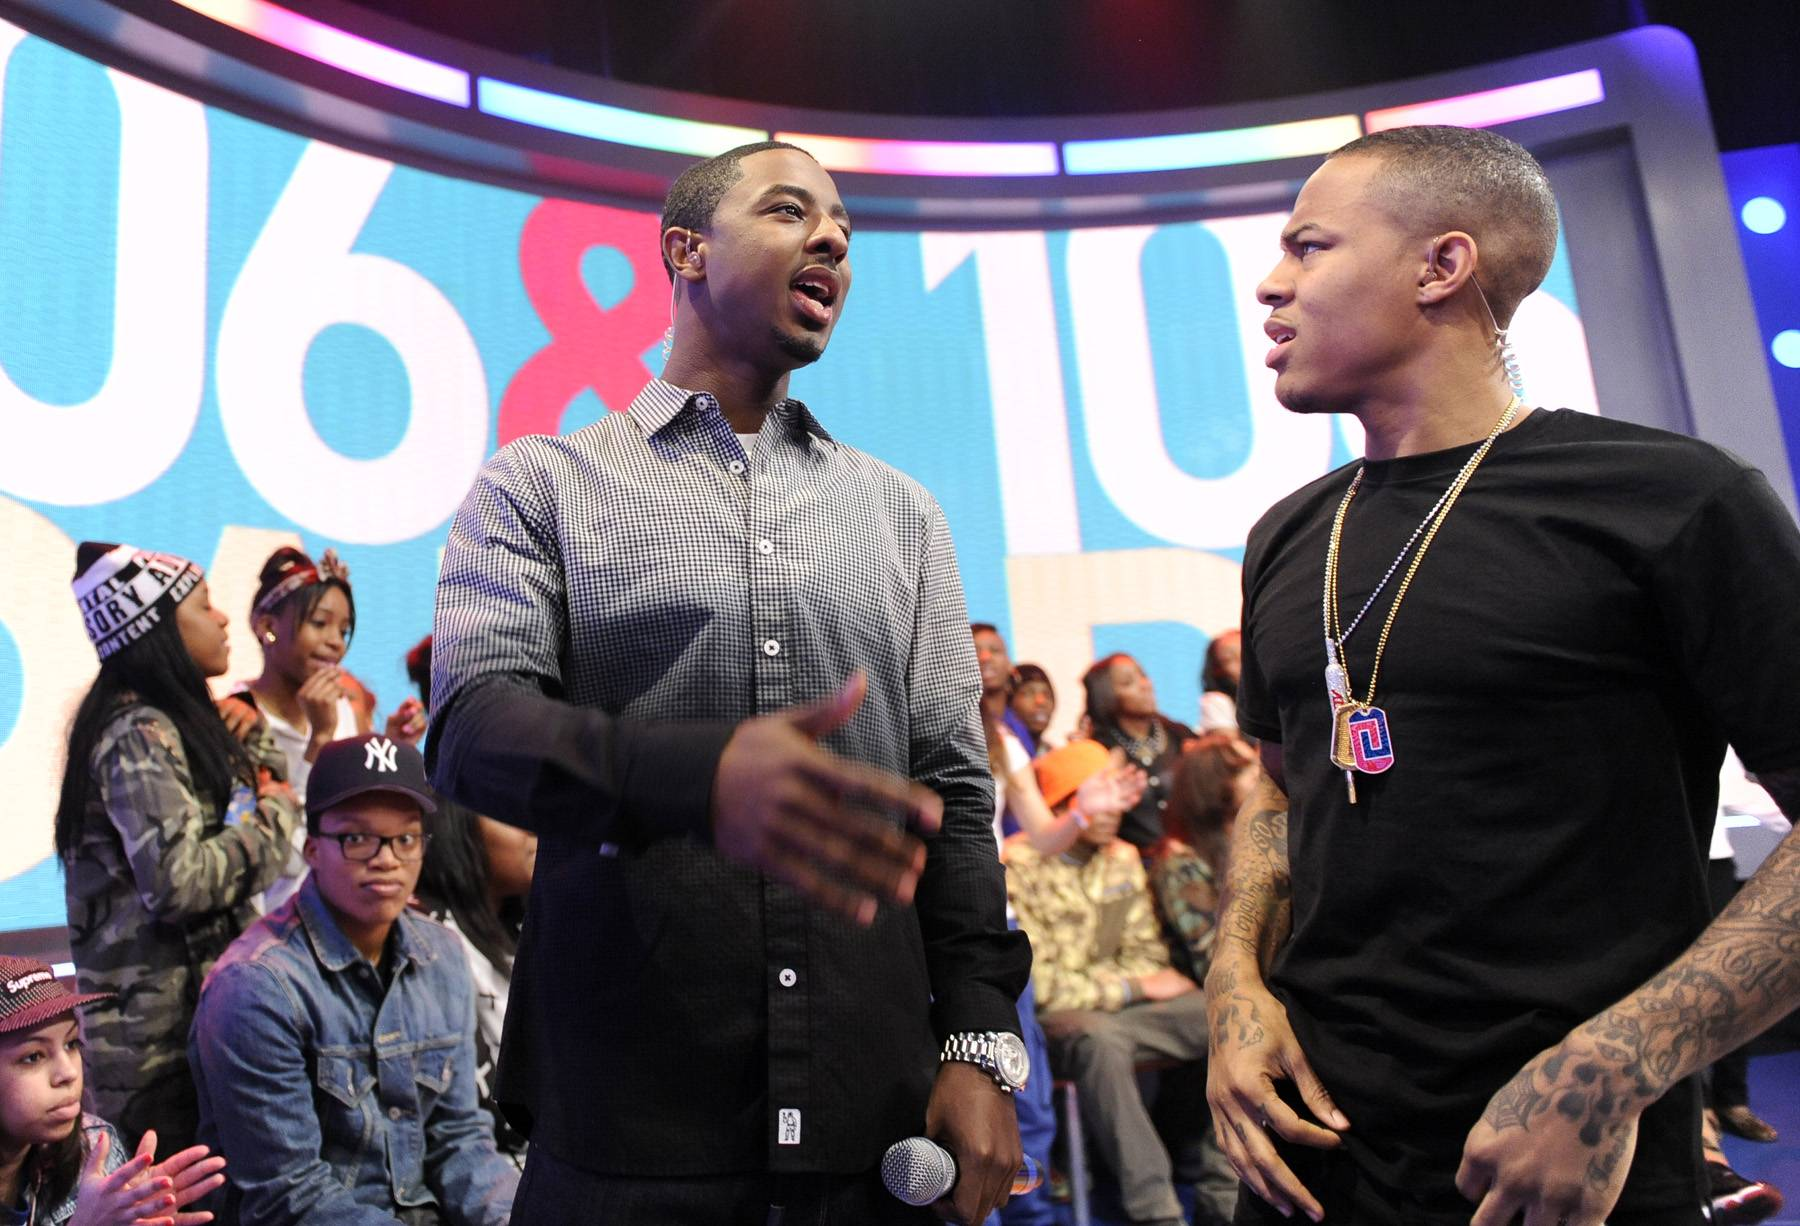 See That - 106 & Park, March 11, 2013. (Photo: John Ricard / BET)